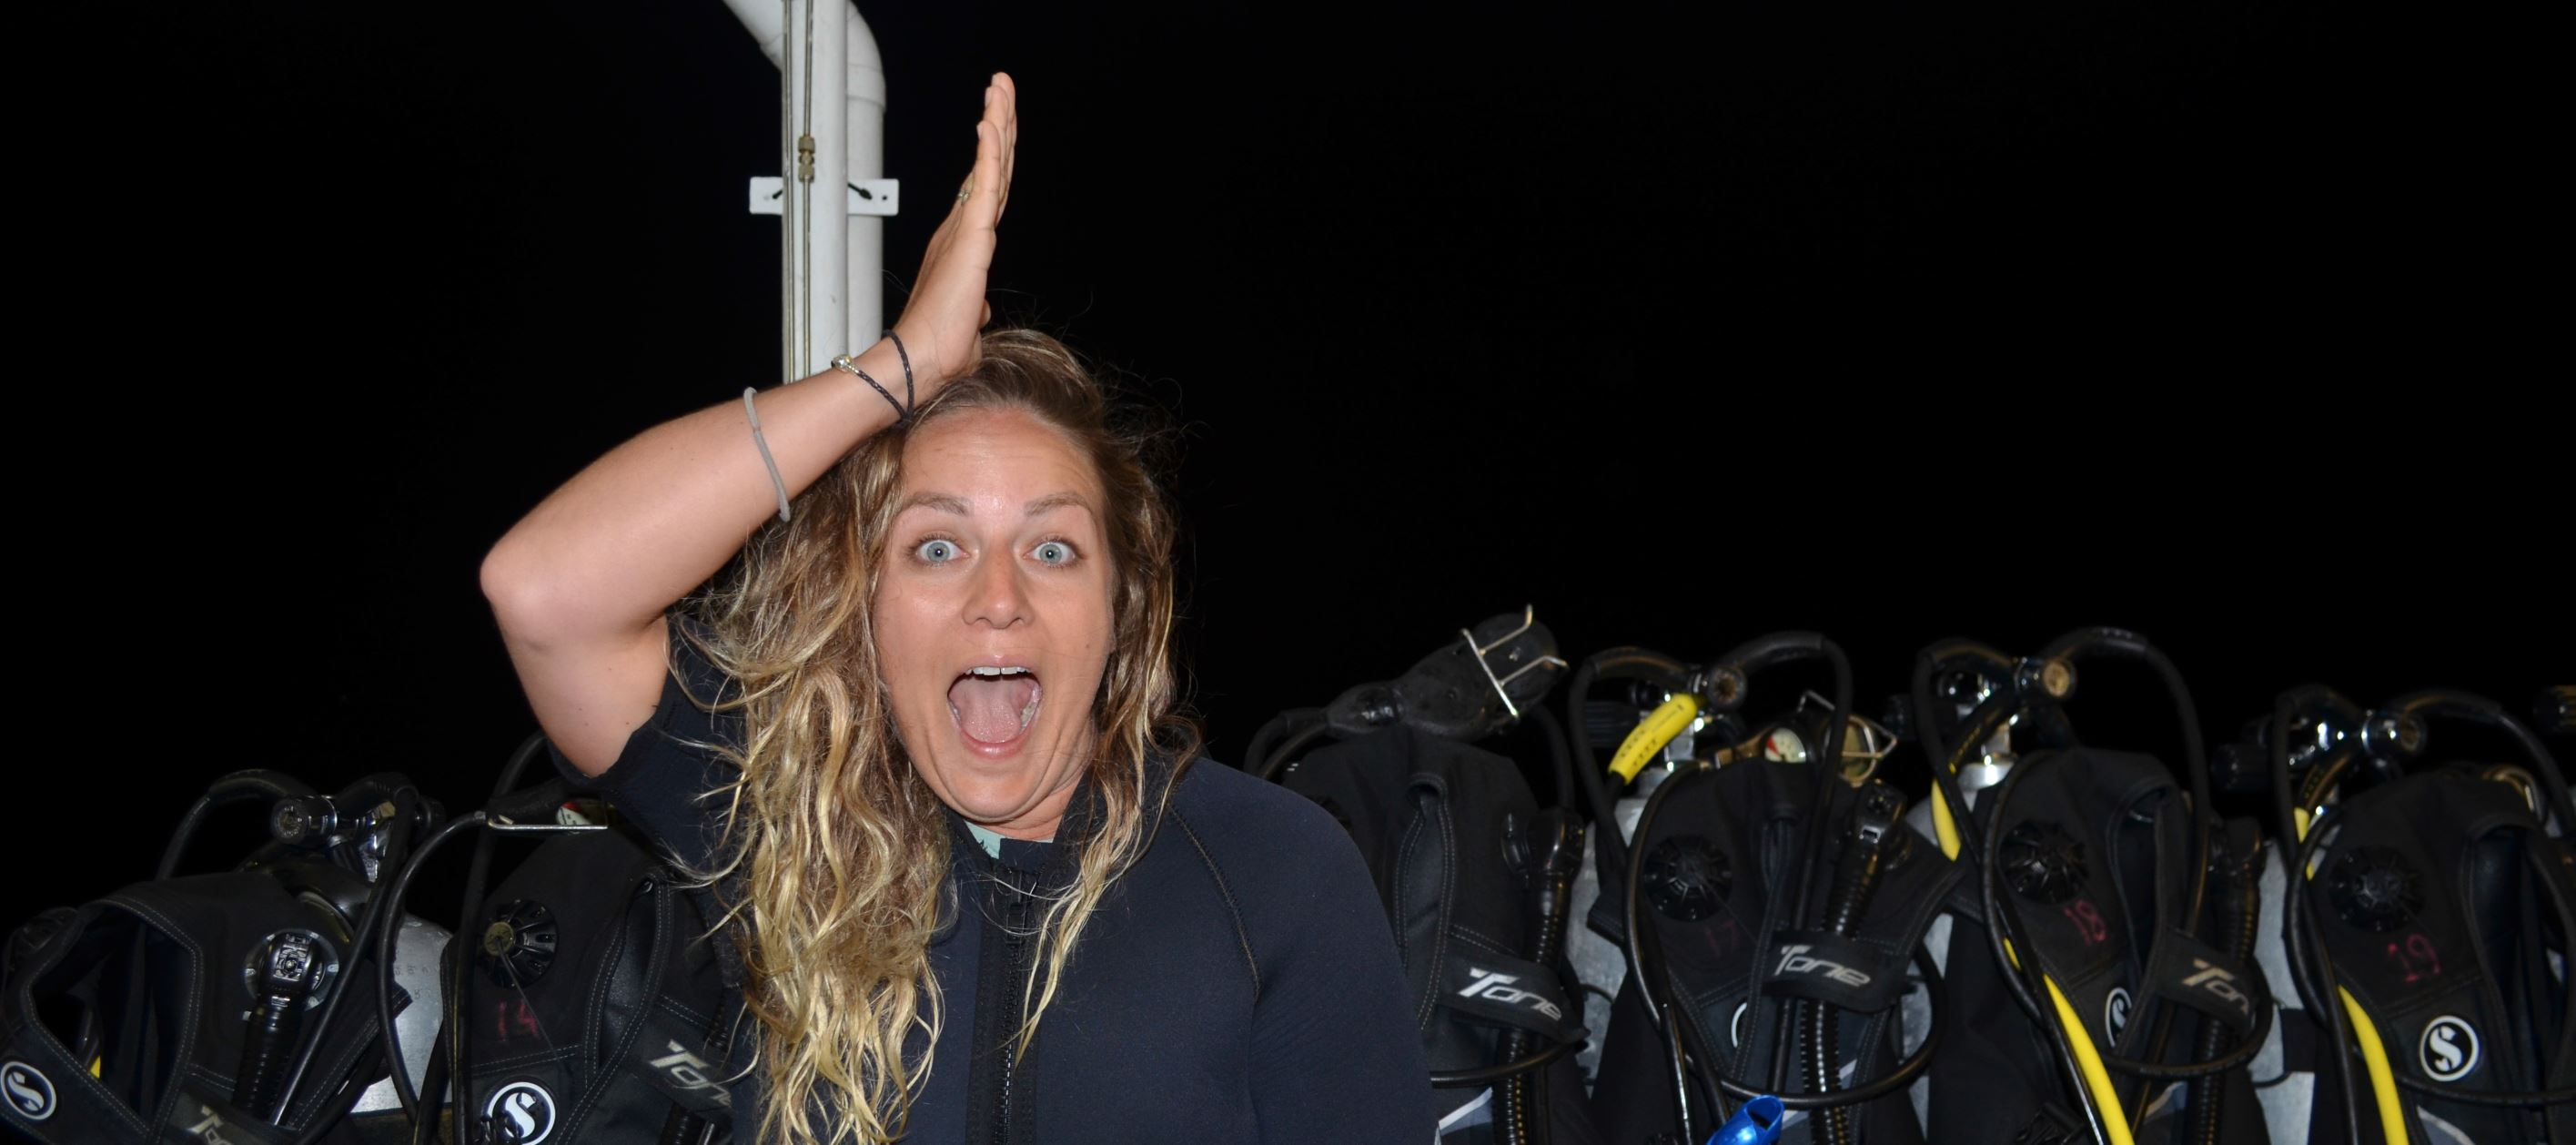 Night scuba diving